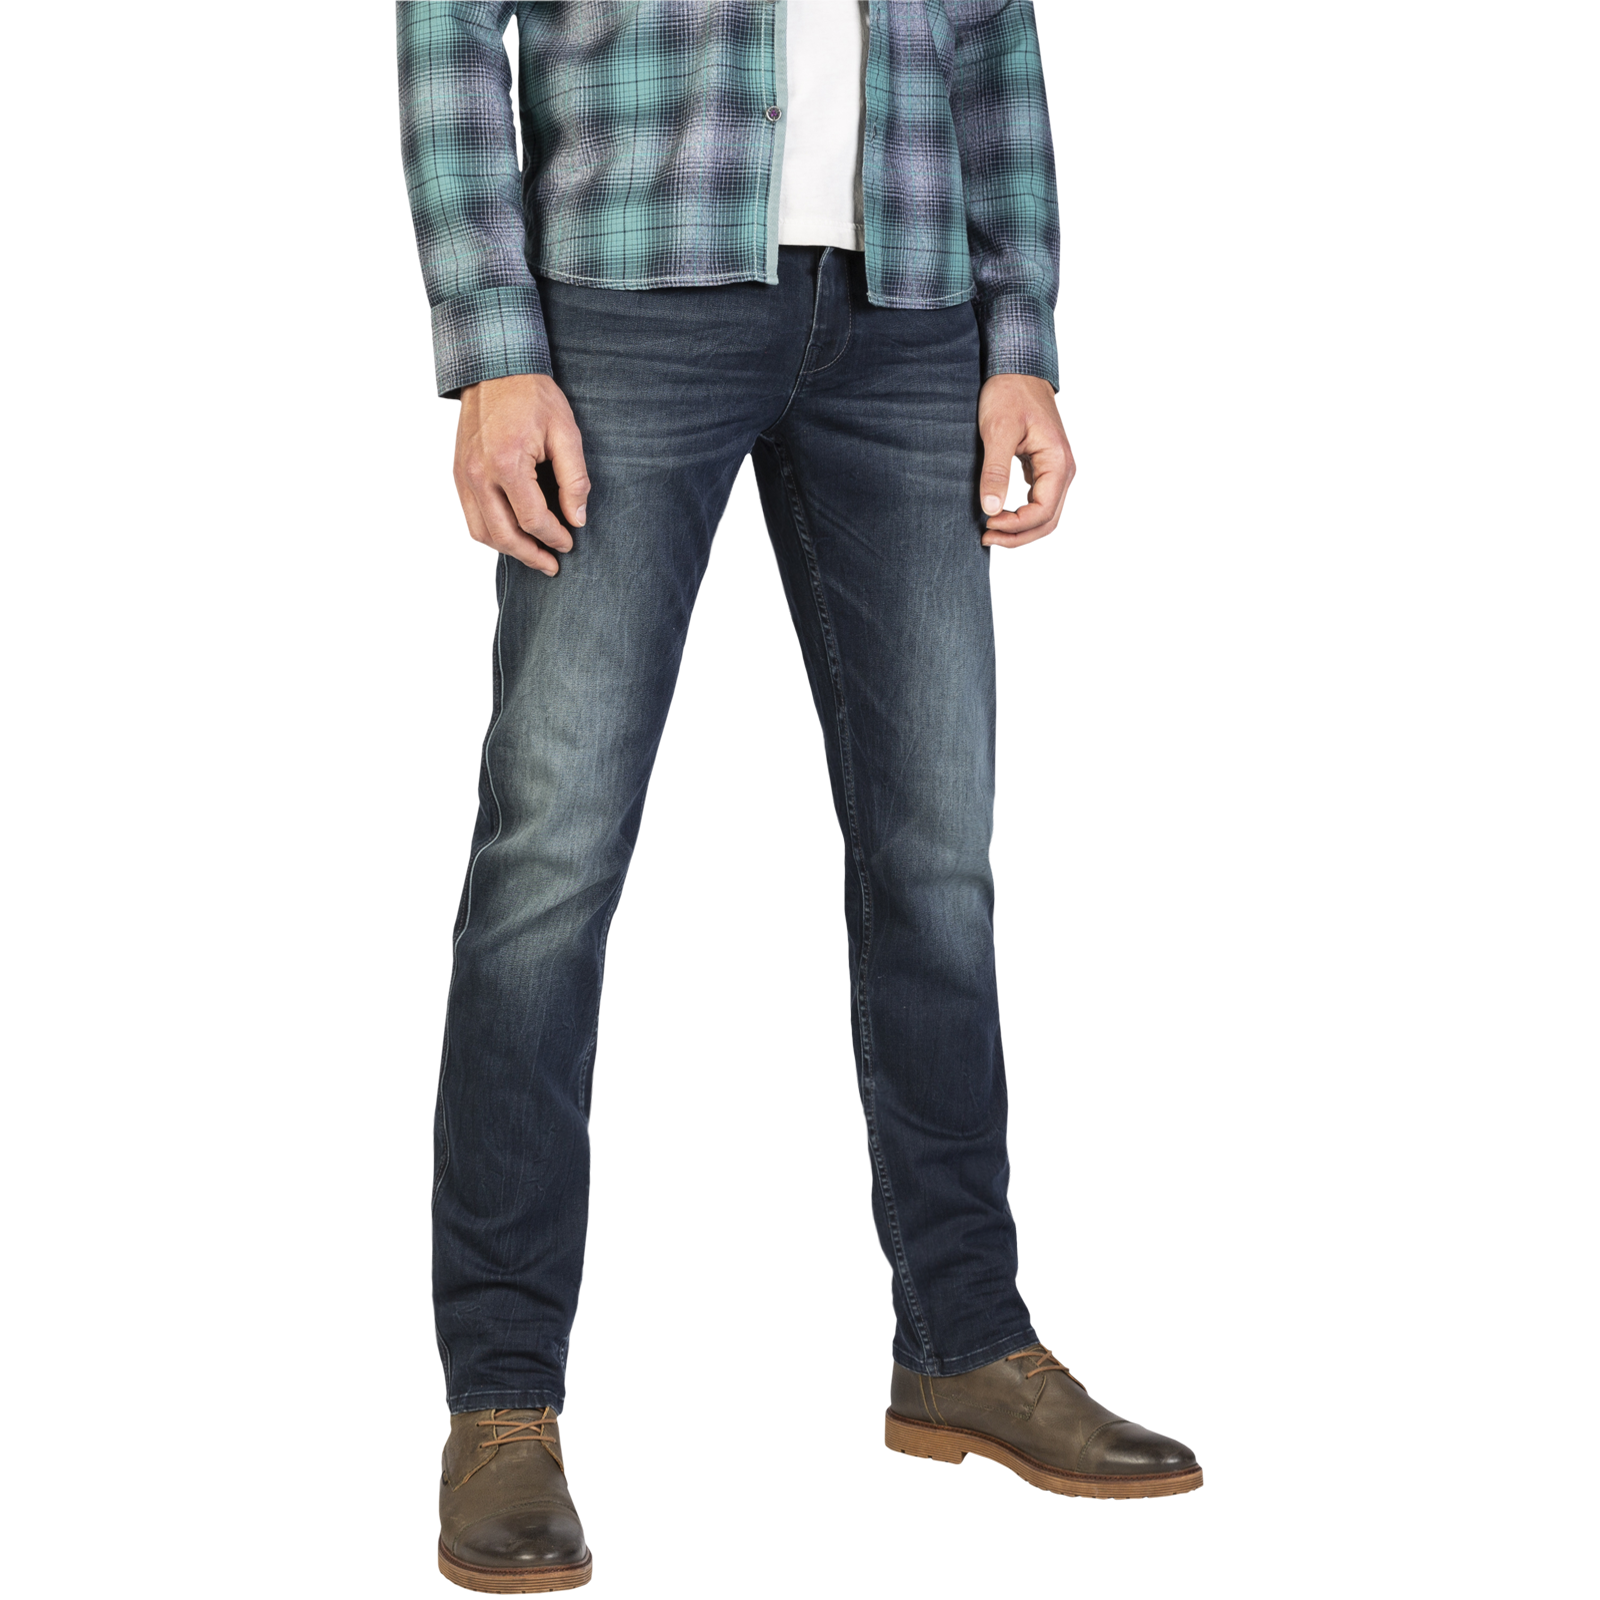 PME Legend PTR120 LMB PME Legend pme legend nightflight jeans lightning magic blue